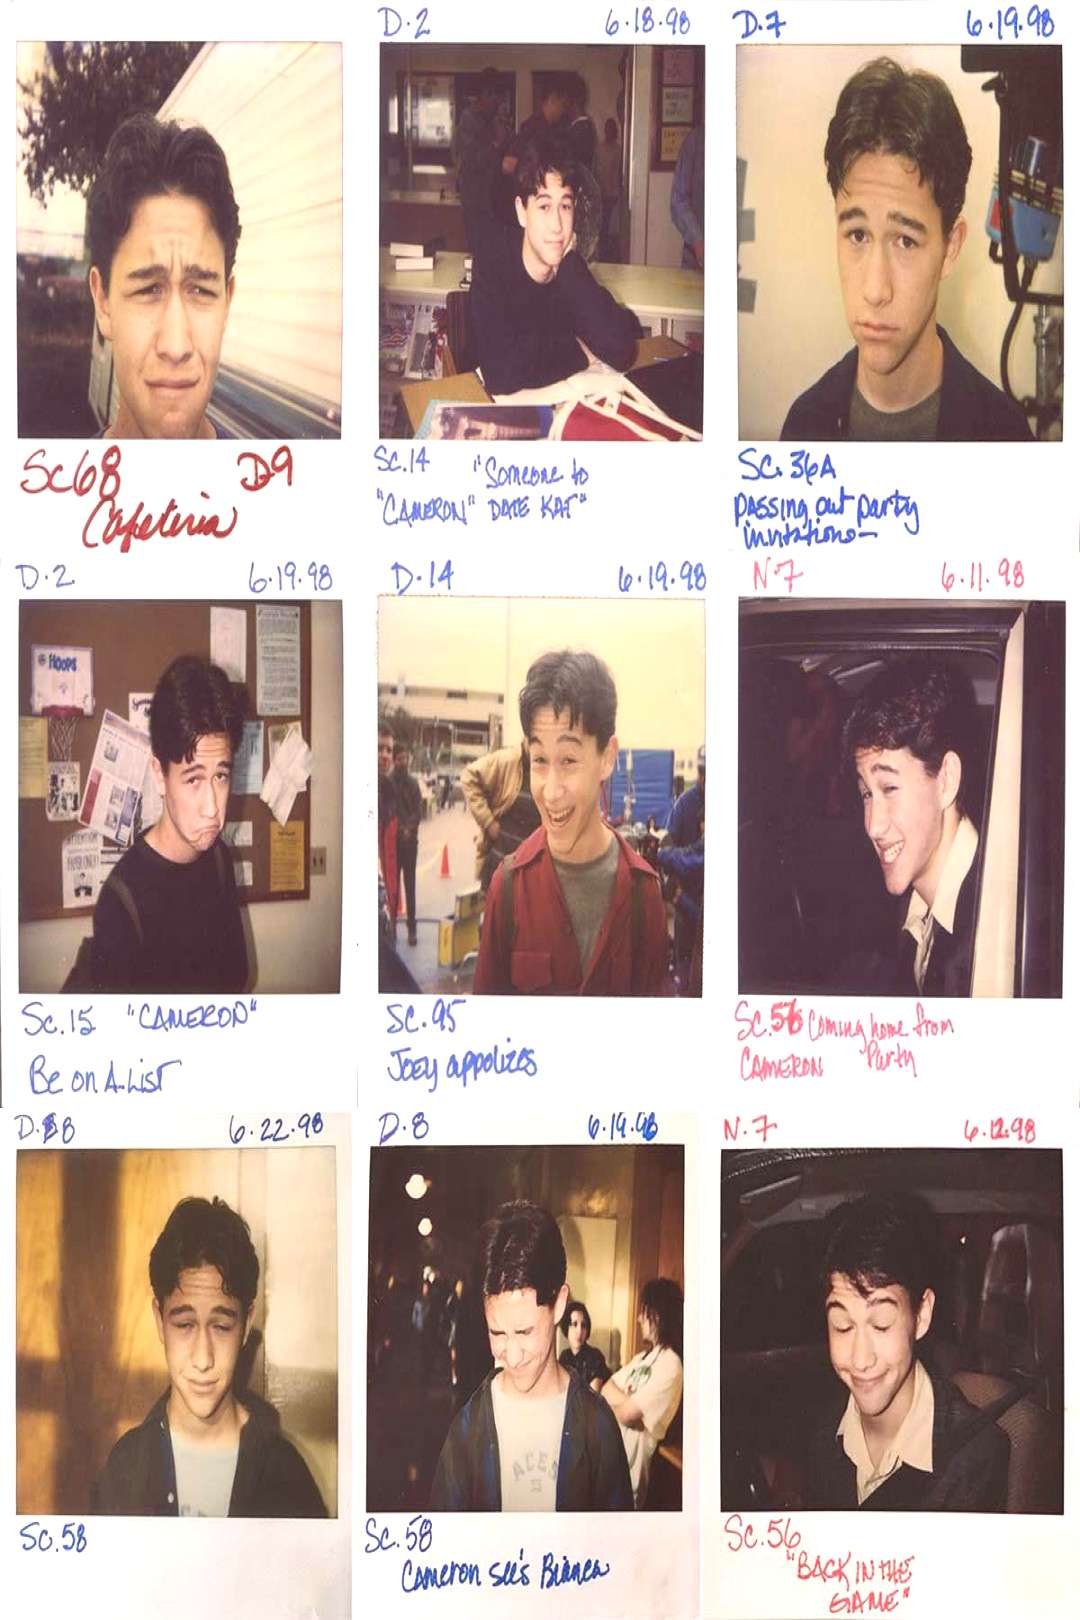 ? on Twitter quotpolaroids of joseph gordon-levitt on the set of 10 things i hate about you… quot